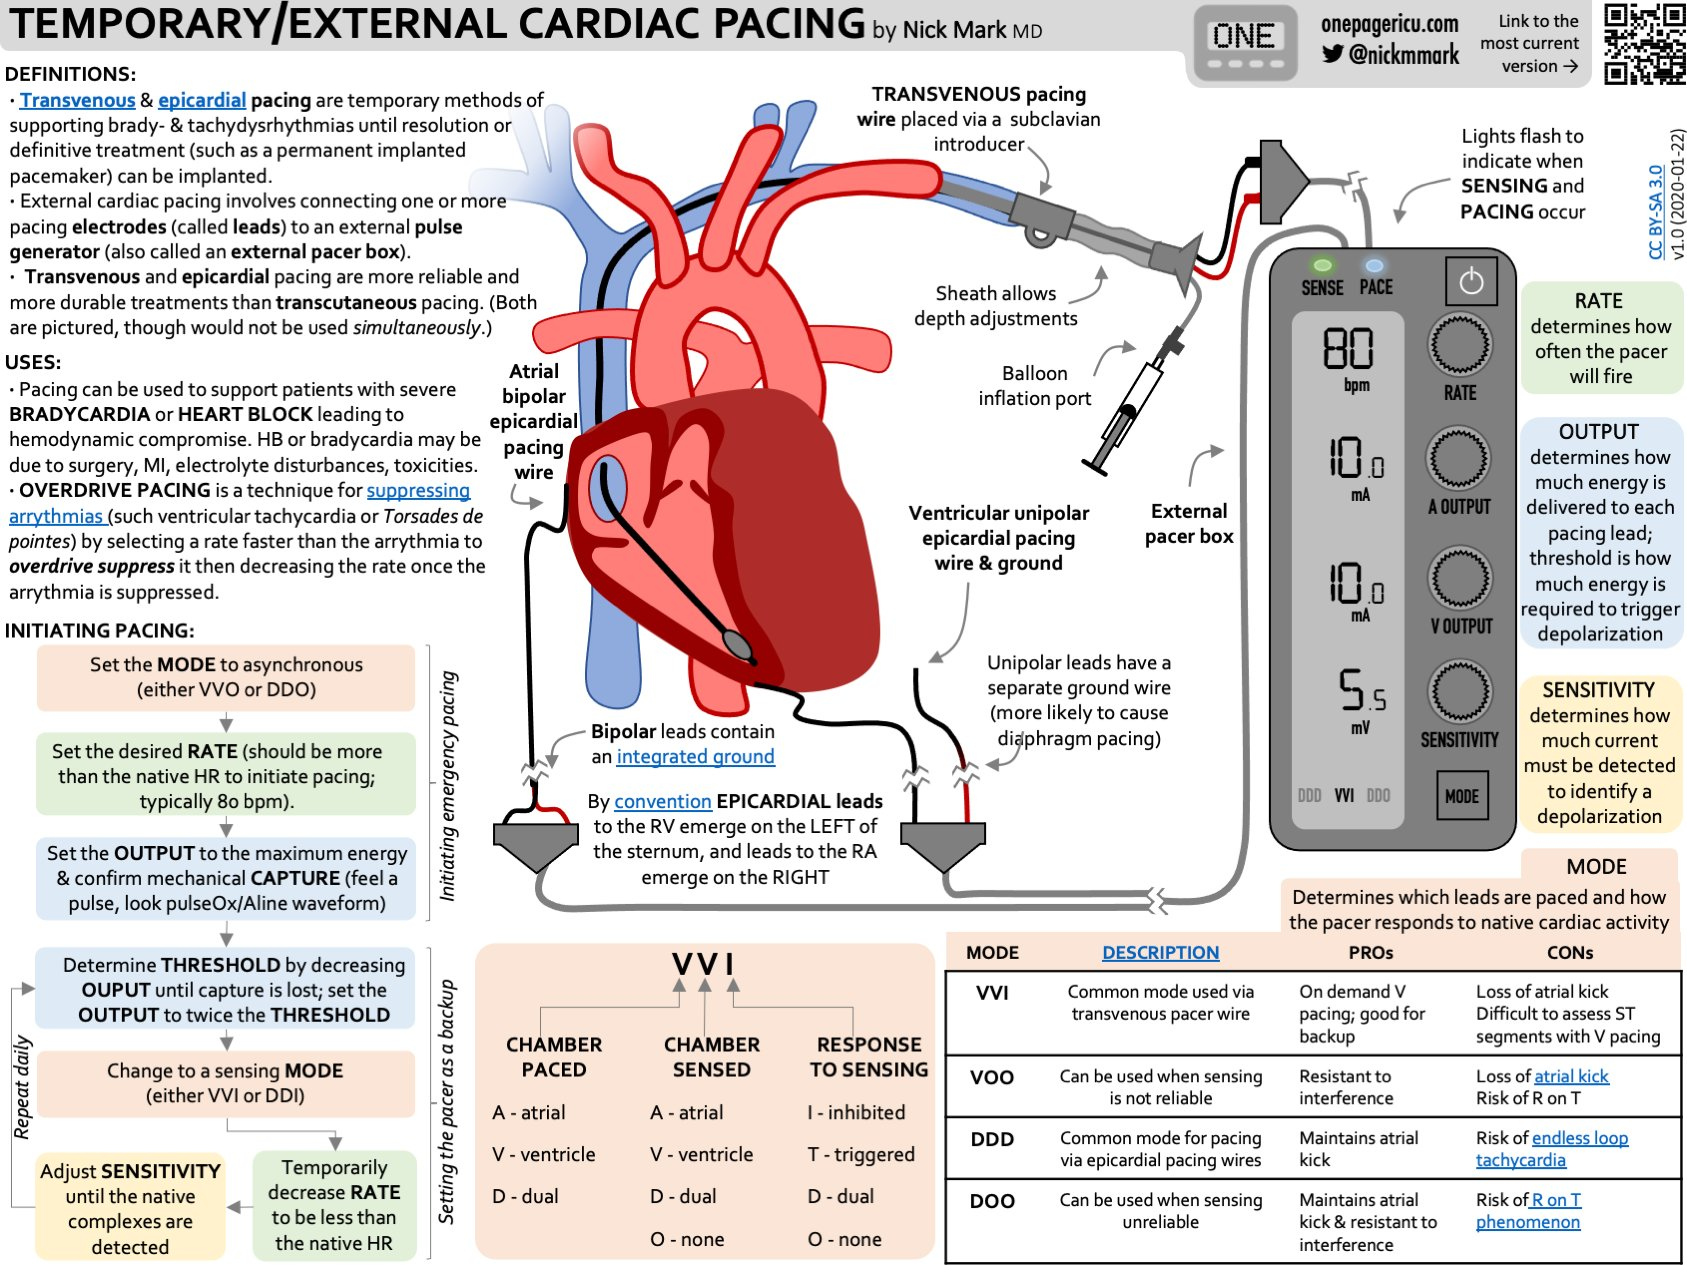 Temporary cardiac pacing overview